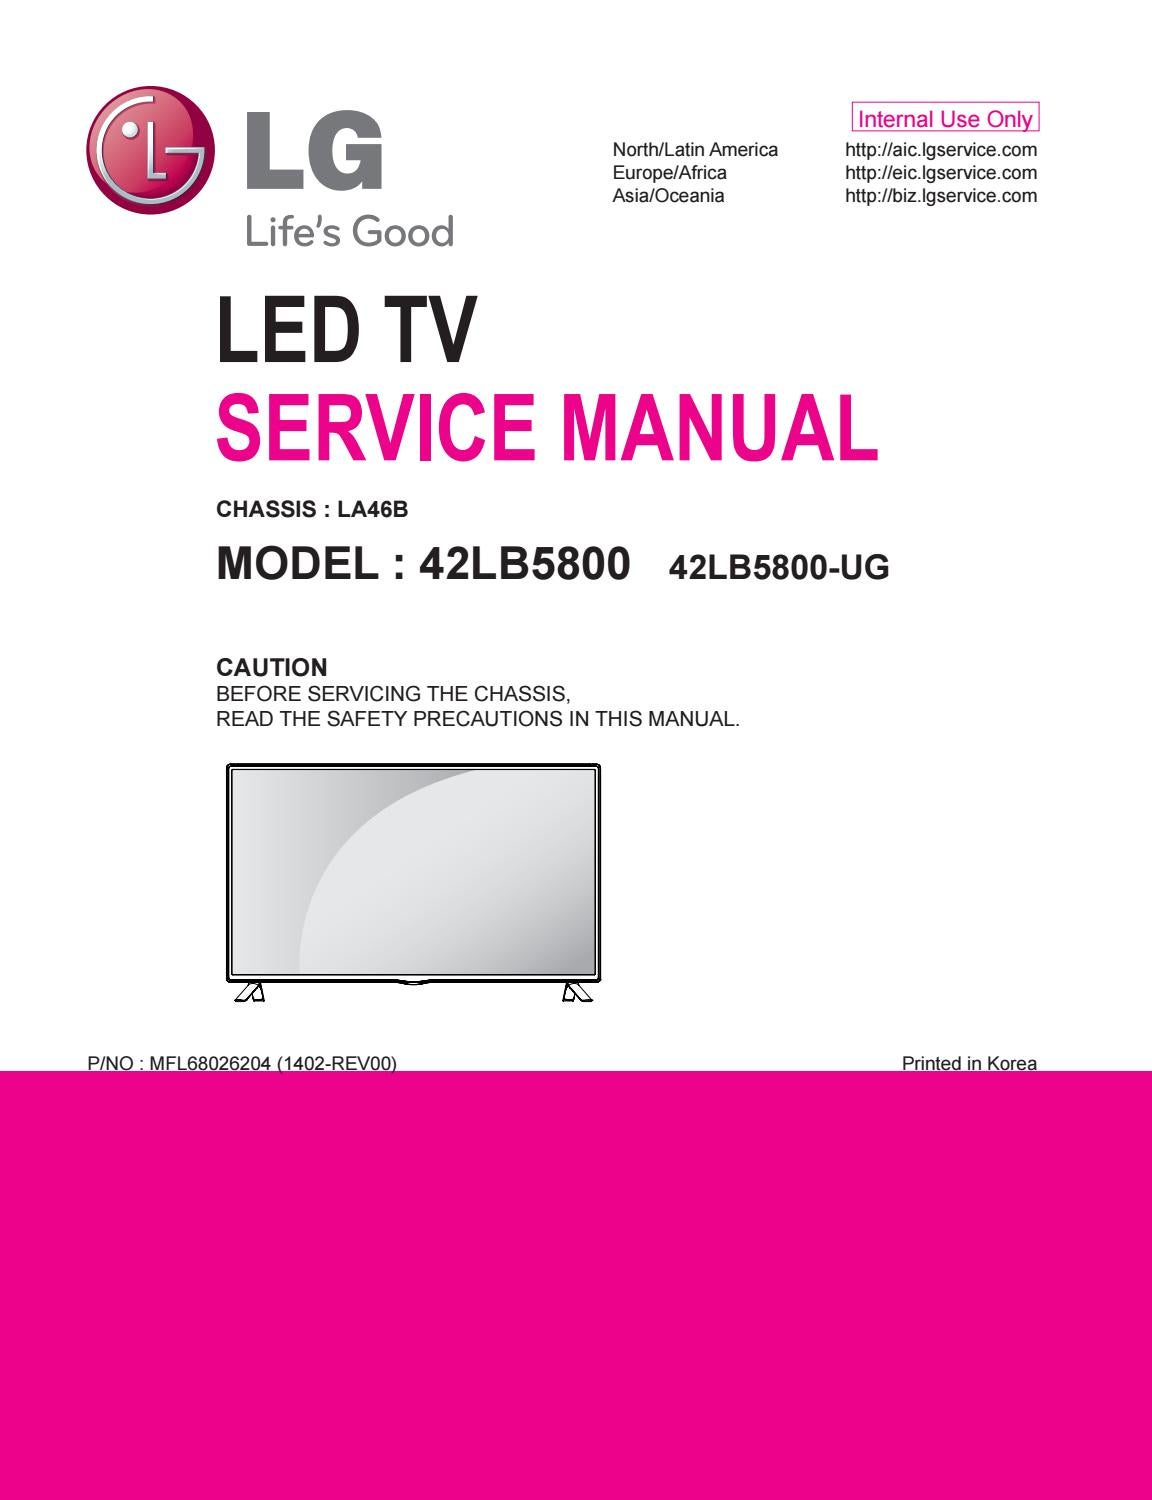 manual servi u00e7o tv led lg 42lb5800 ug chassis la46b by